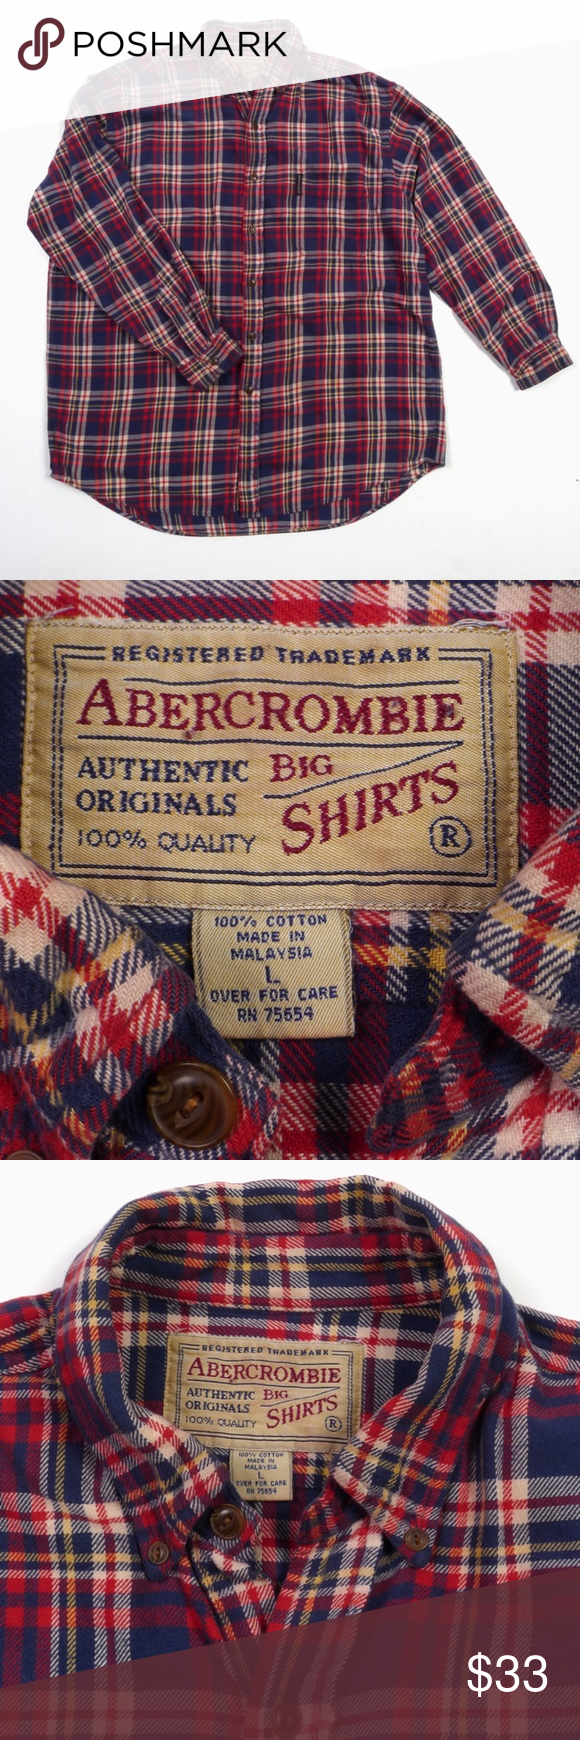 Flannel shirts 1990s  Abercrombie BIG SHIRTS Flannel VTG Outdoors Rugged  My Posh Closet